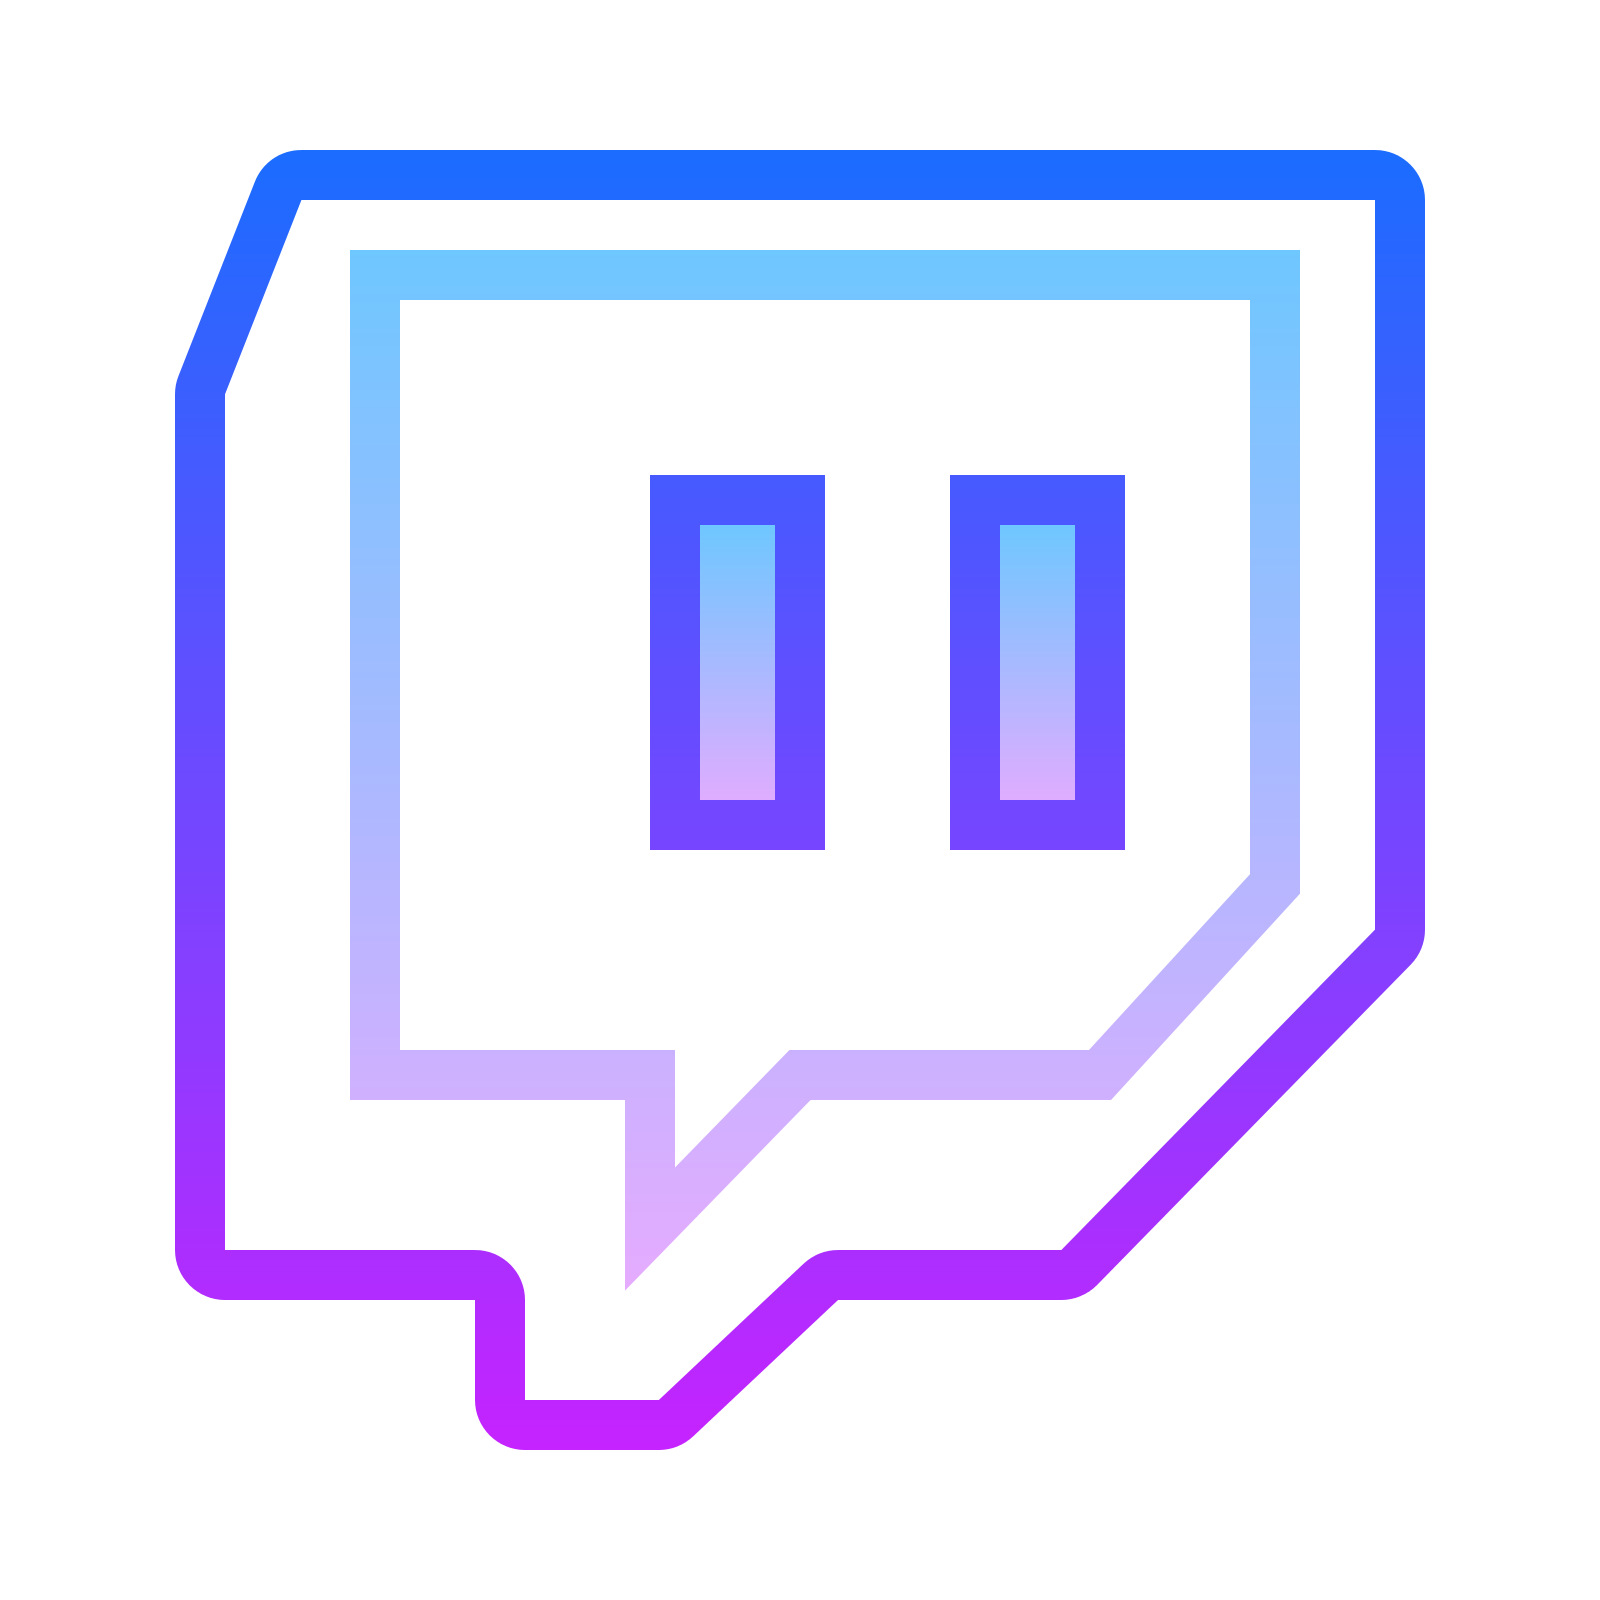 Twitch fortnite logo icon transparent